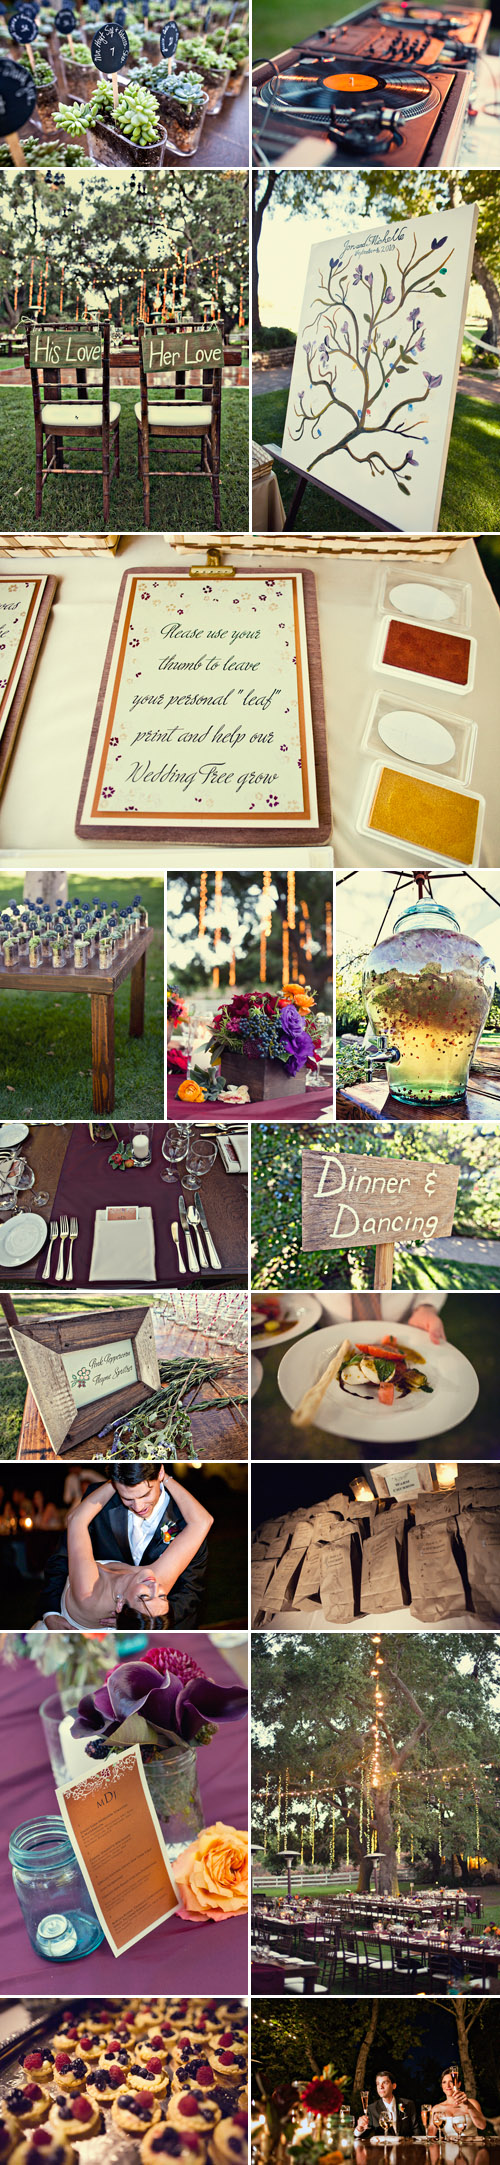 rustic elegant wedding at Saddlerock Ranch in Malibu, California, outdoor wedding, navy, burgundy, fuchsia and orange wedding colors, photos by Joy Marie Photography